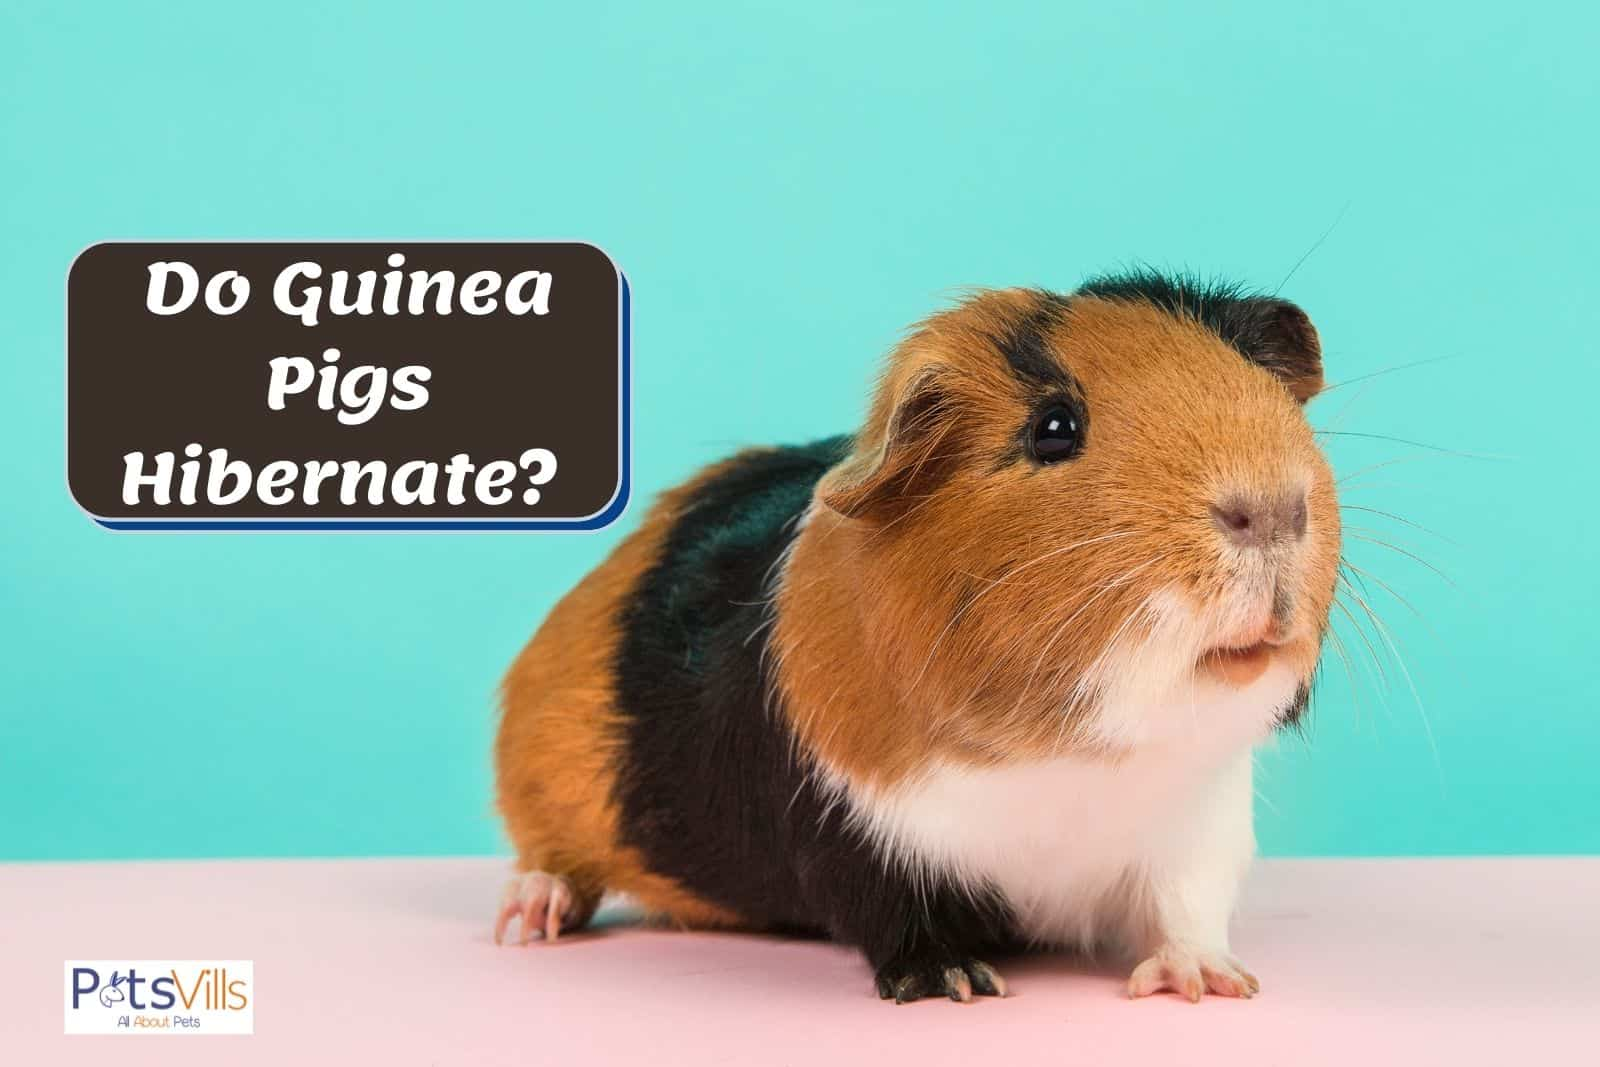 a very cute guinea pig beside the text